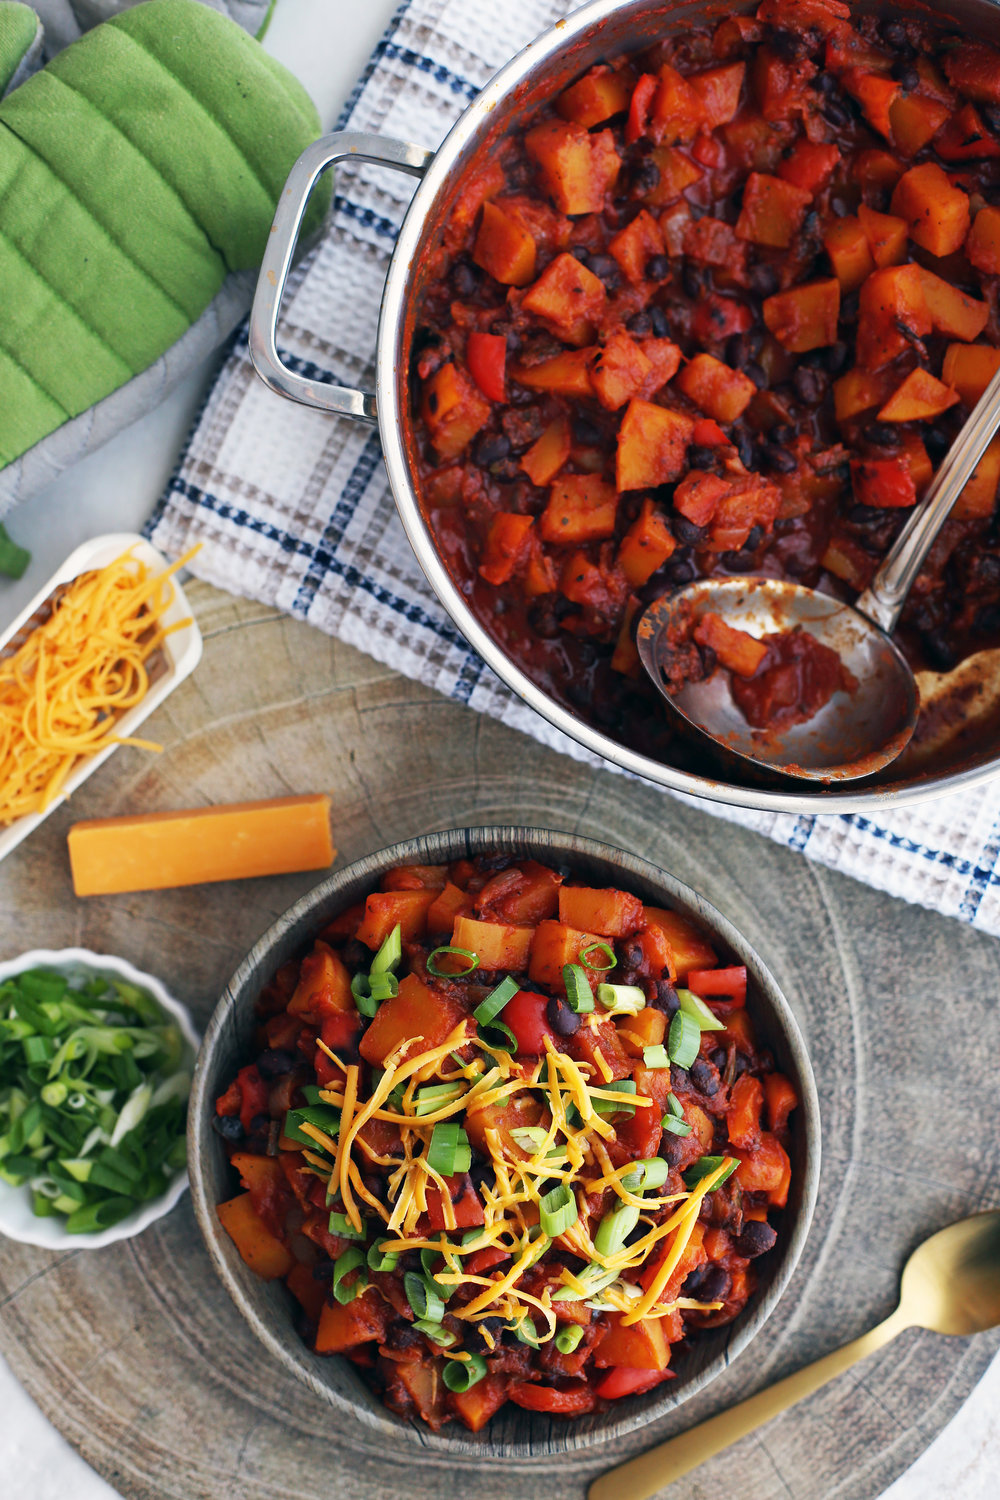 Roasted Butternut Squash and Black Bean Chili in a wooden bowl and in a large metal pot.